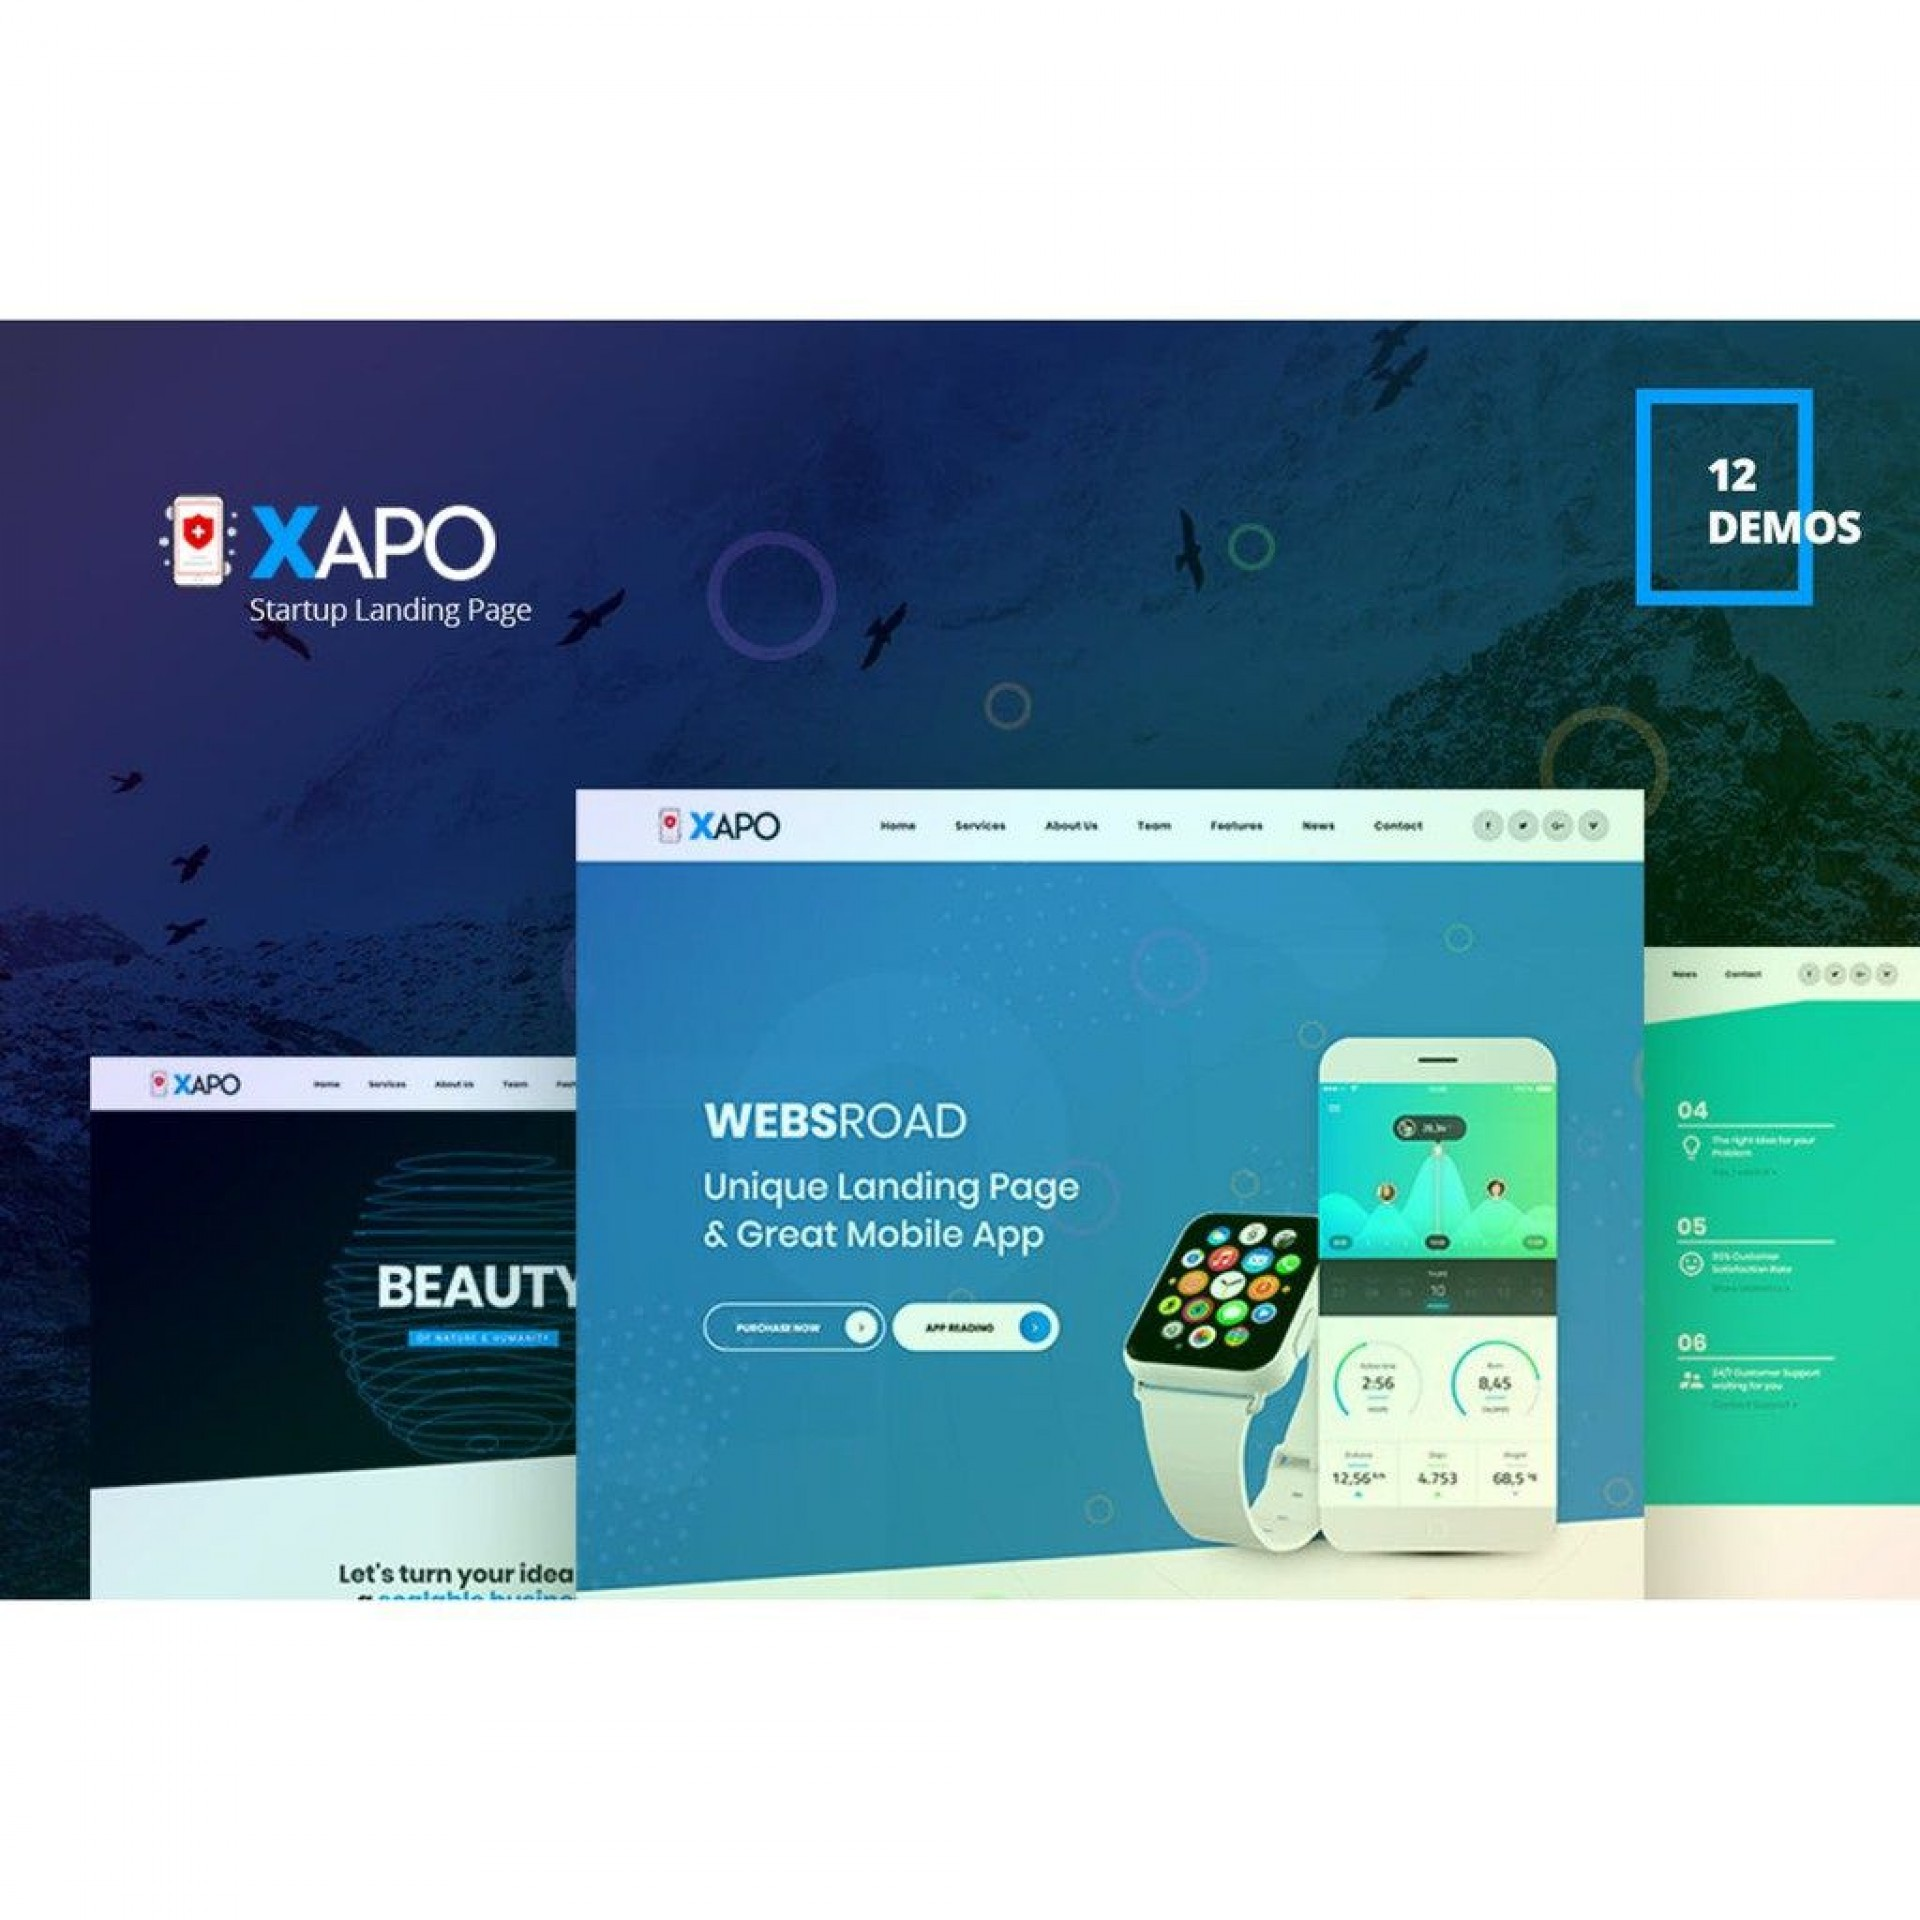 000 Breathtaking Responsive Landing Page Template Picture  Templates Html5 Free Download Wordpres Html1920